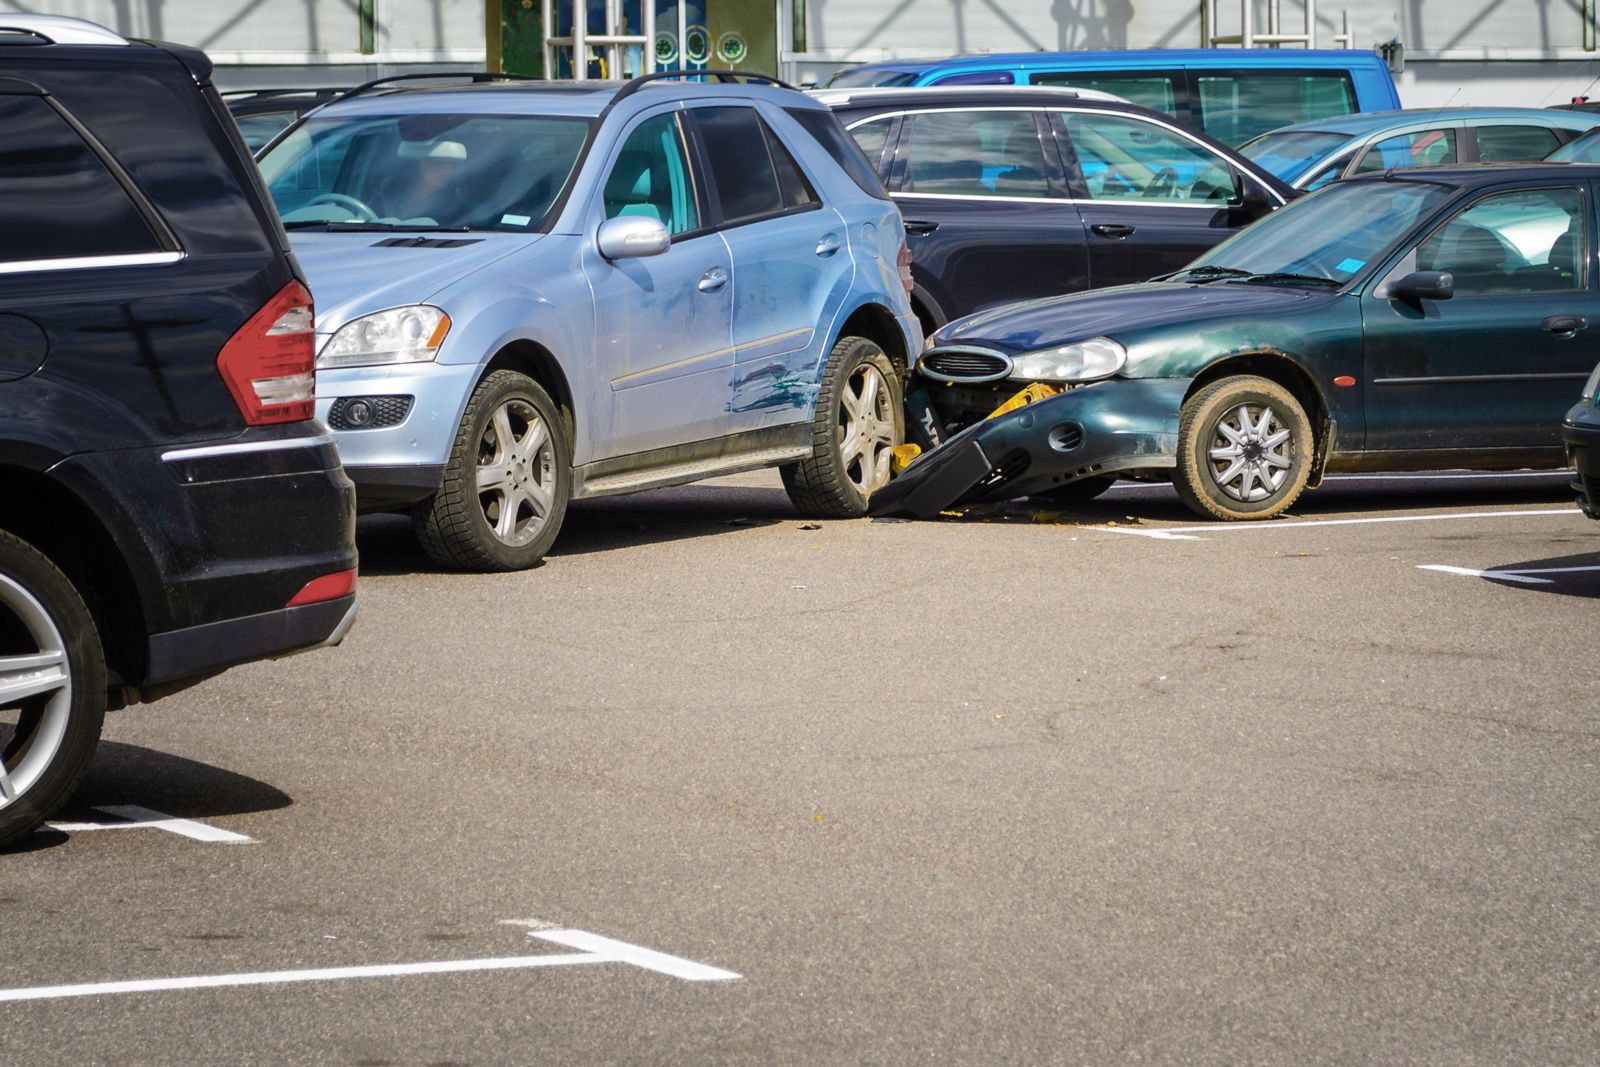 Parking Lot Safety Tips to Follow This Holiday Season